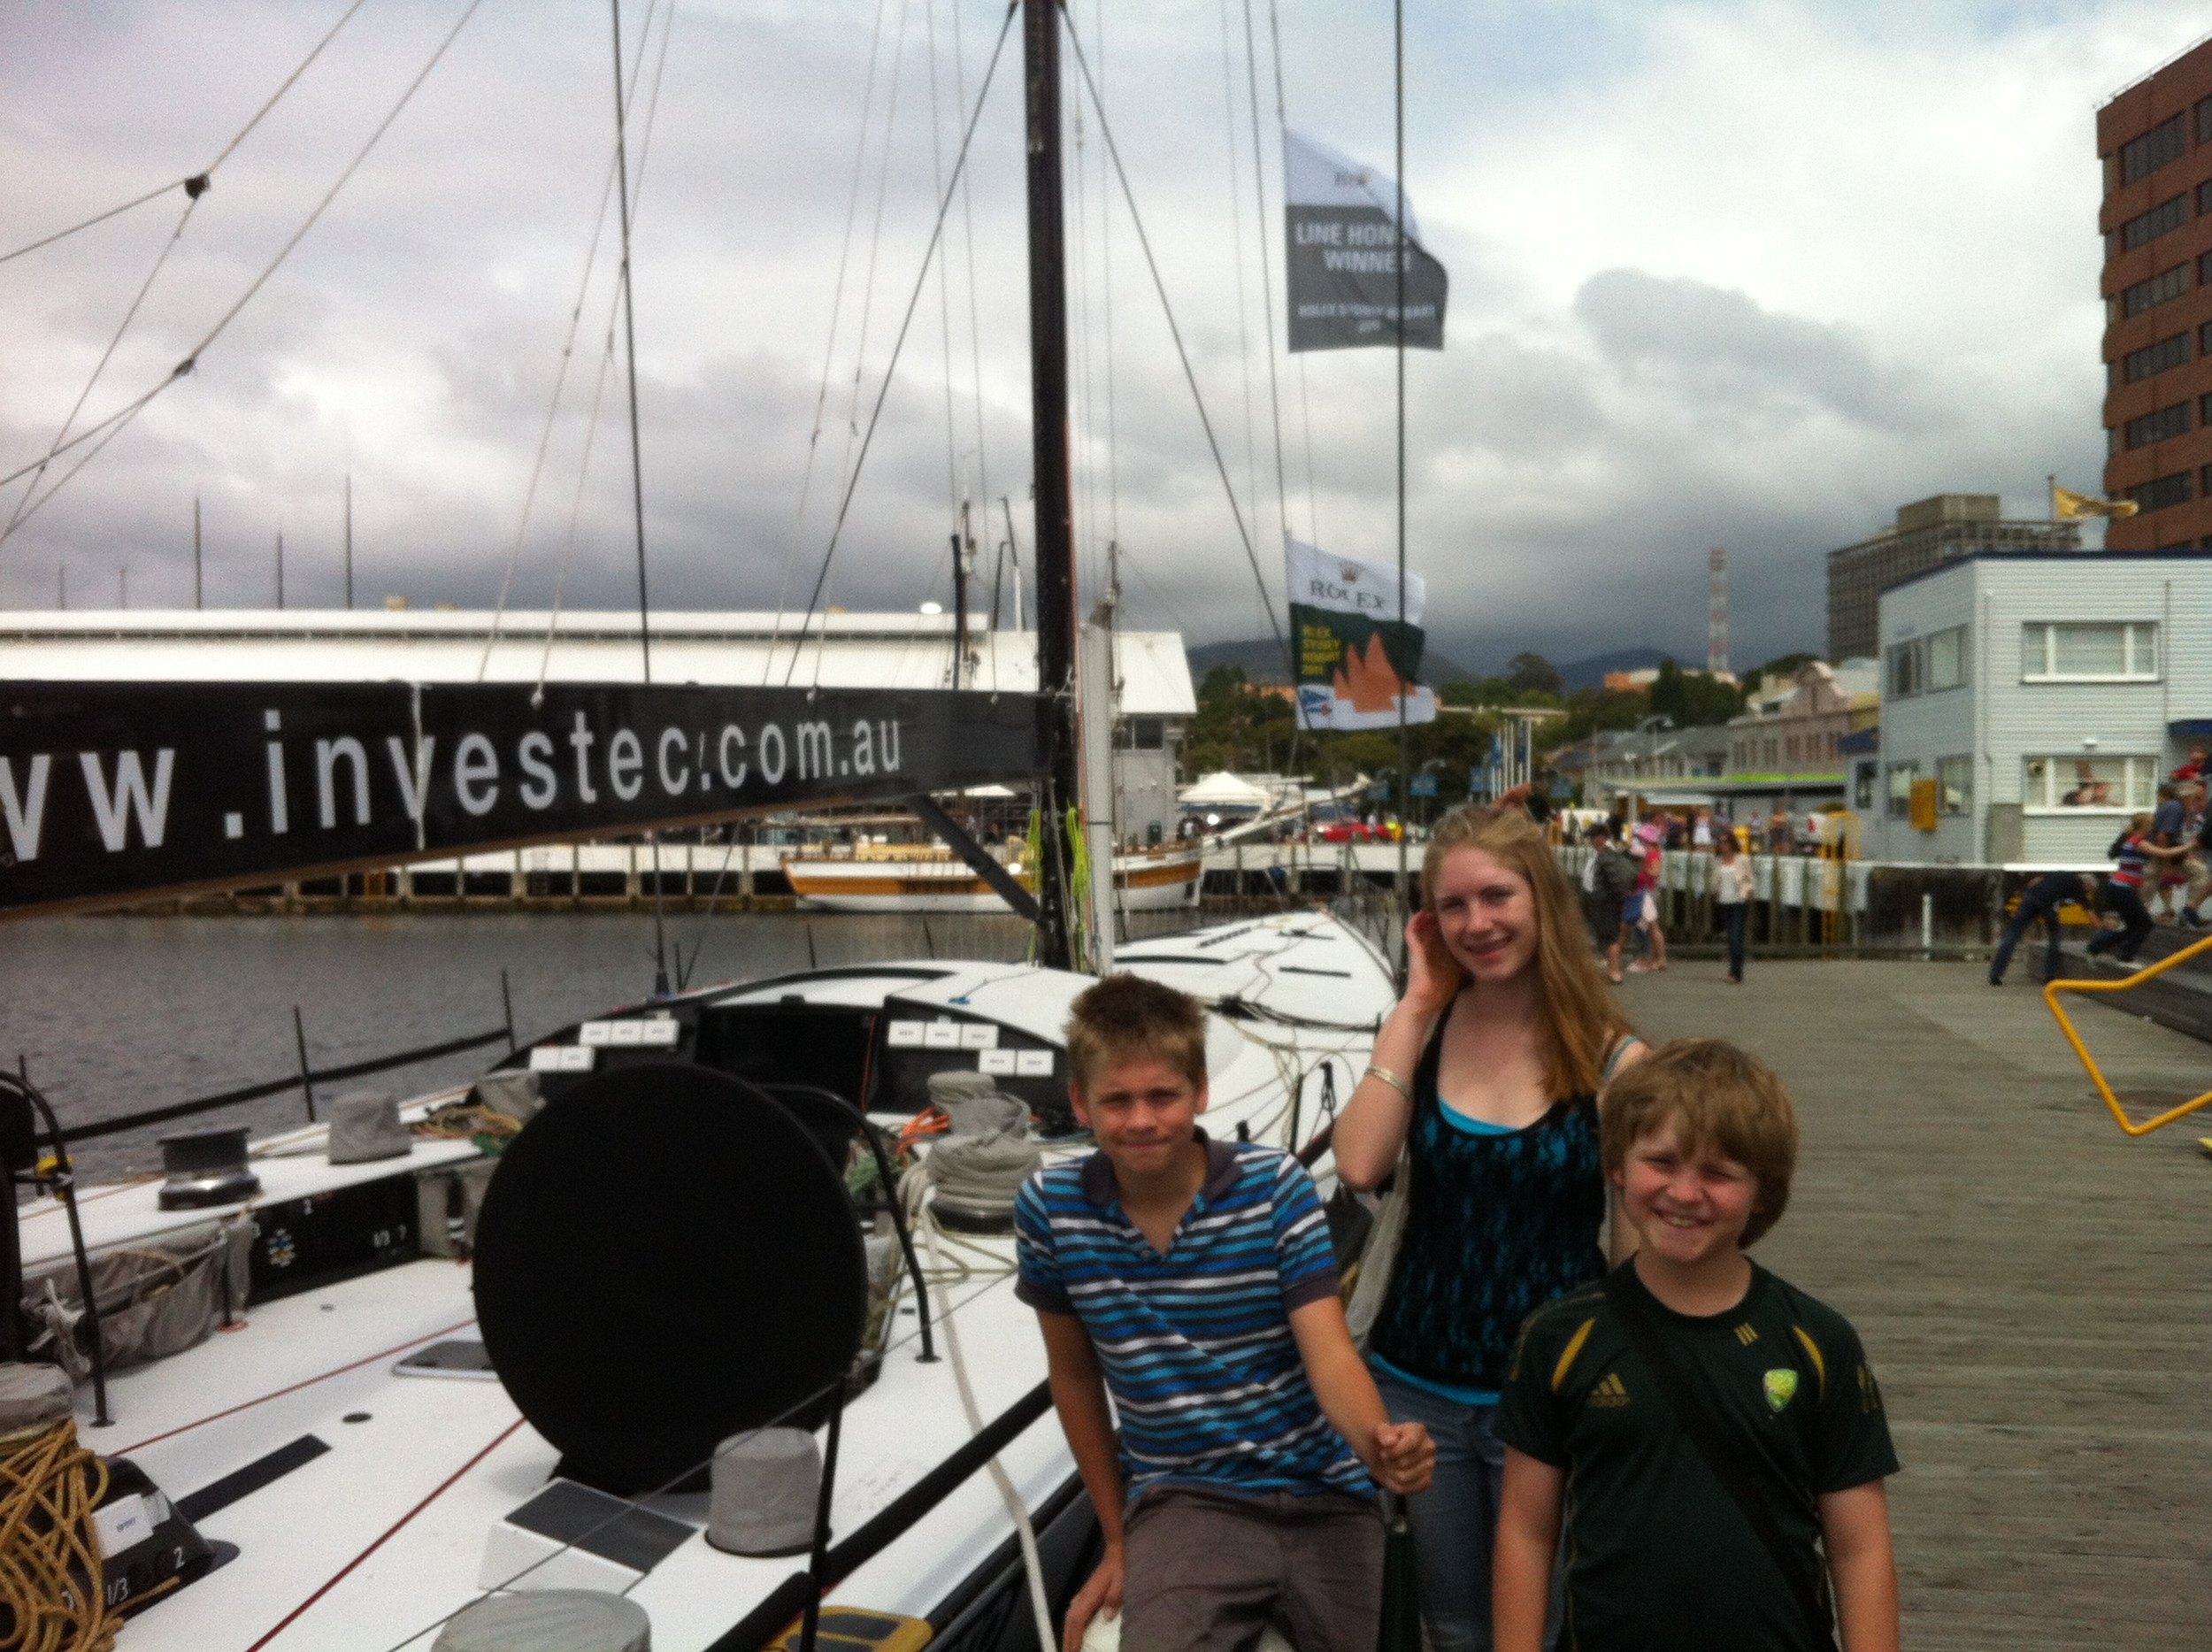 Investec Loyal at Hobart Wharf